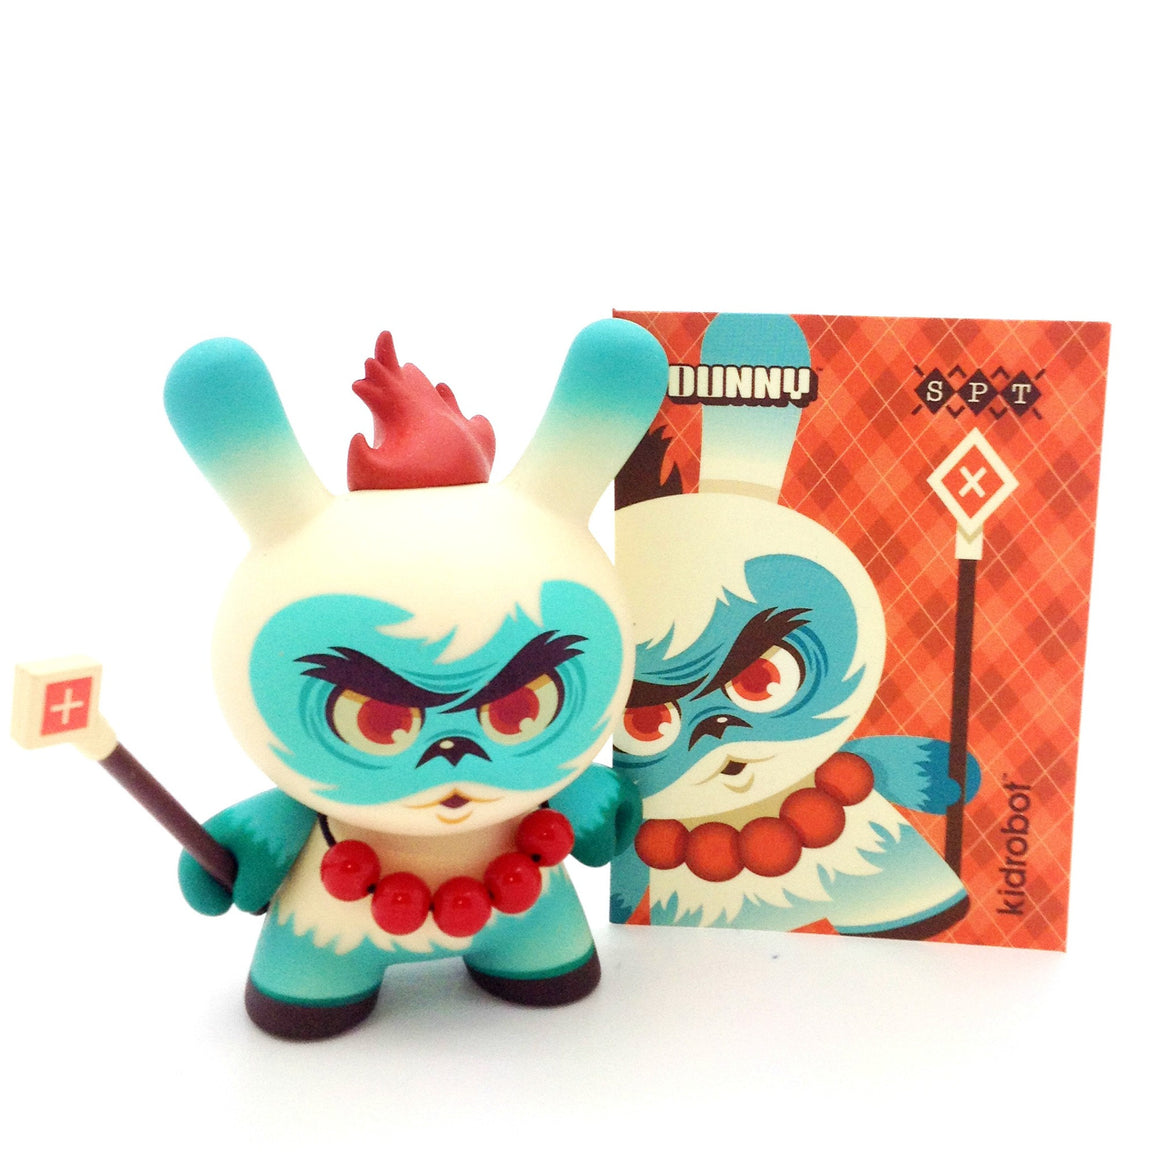 Side Show Dunny Series - Argyle Warrior (Scott Tolleson) - Mindzai  - 1